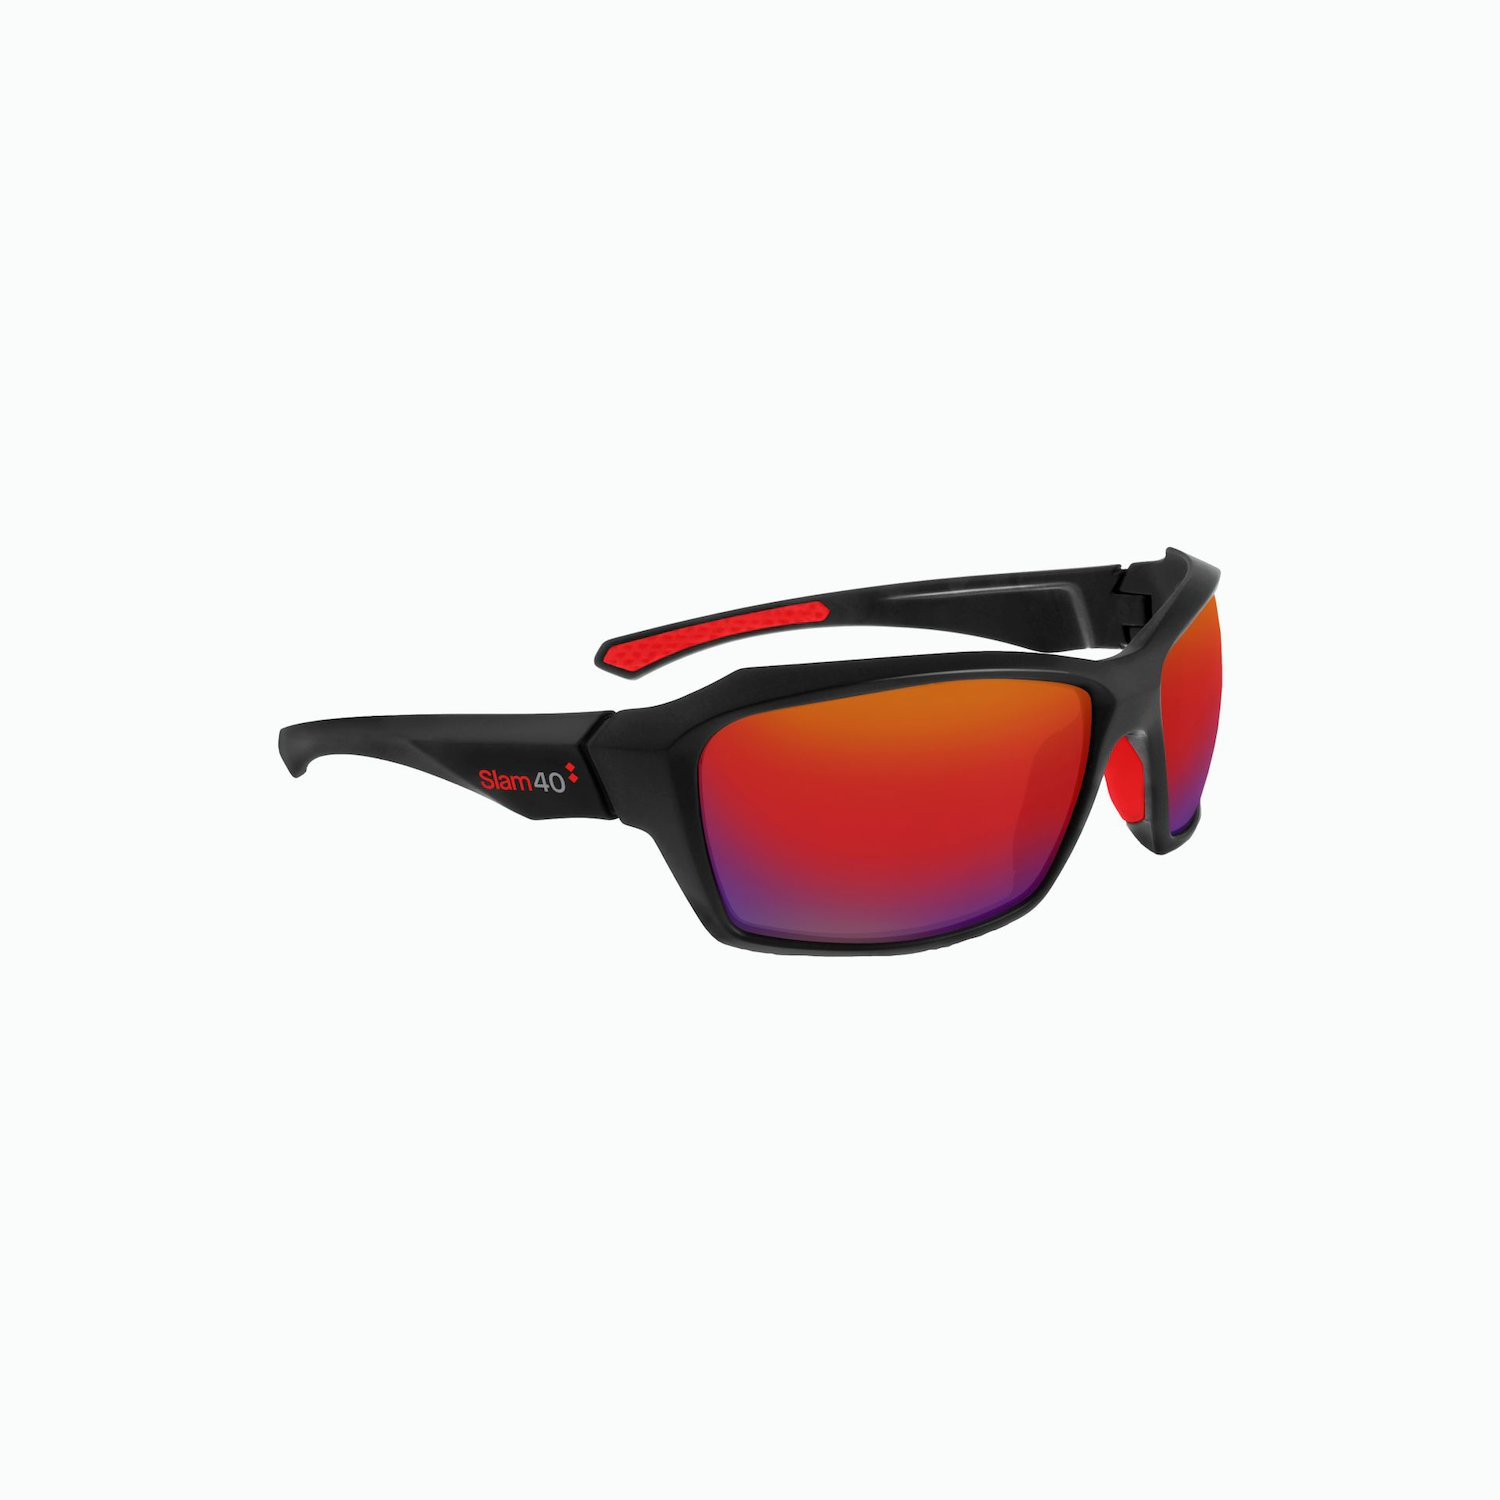 40th Sunglasses - Negro / Rojo / Rojo